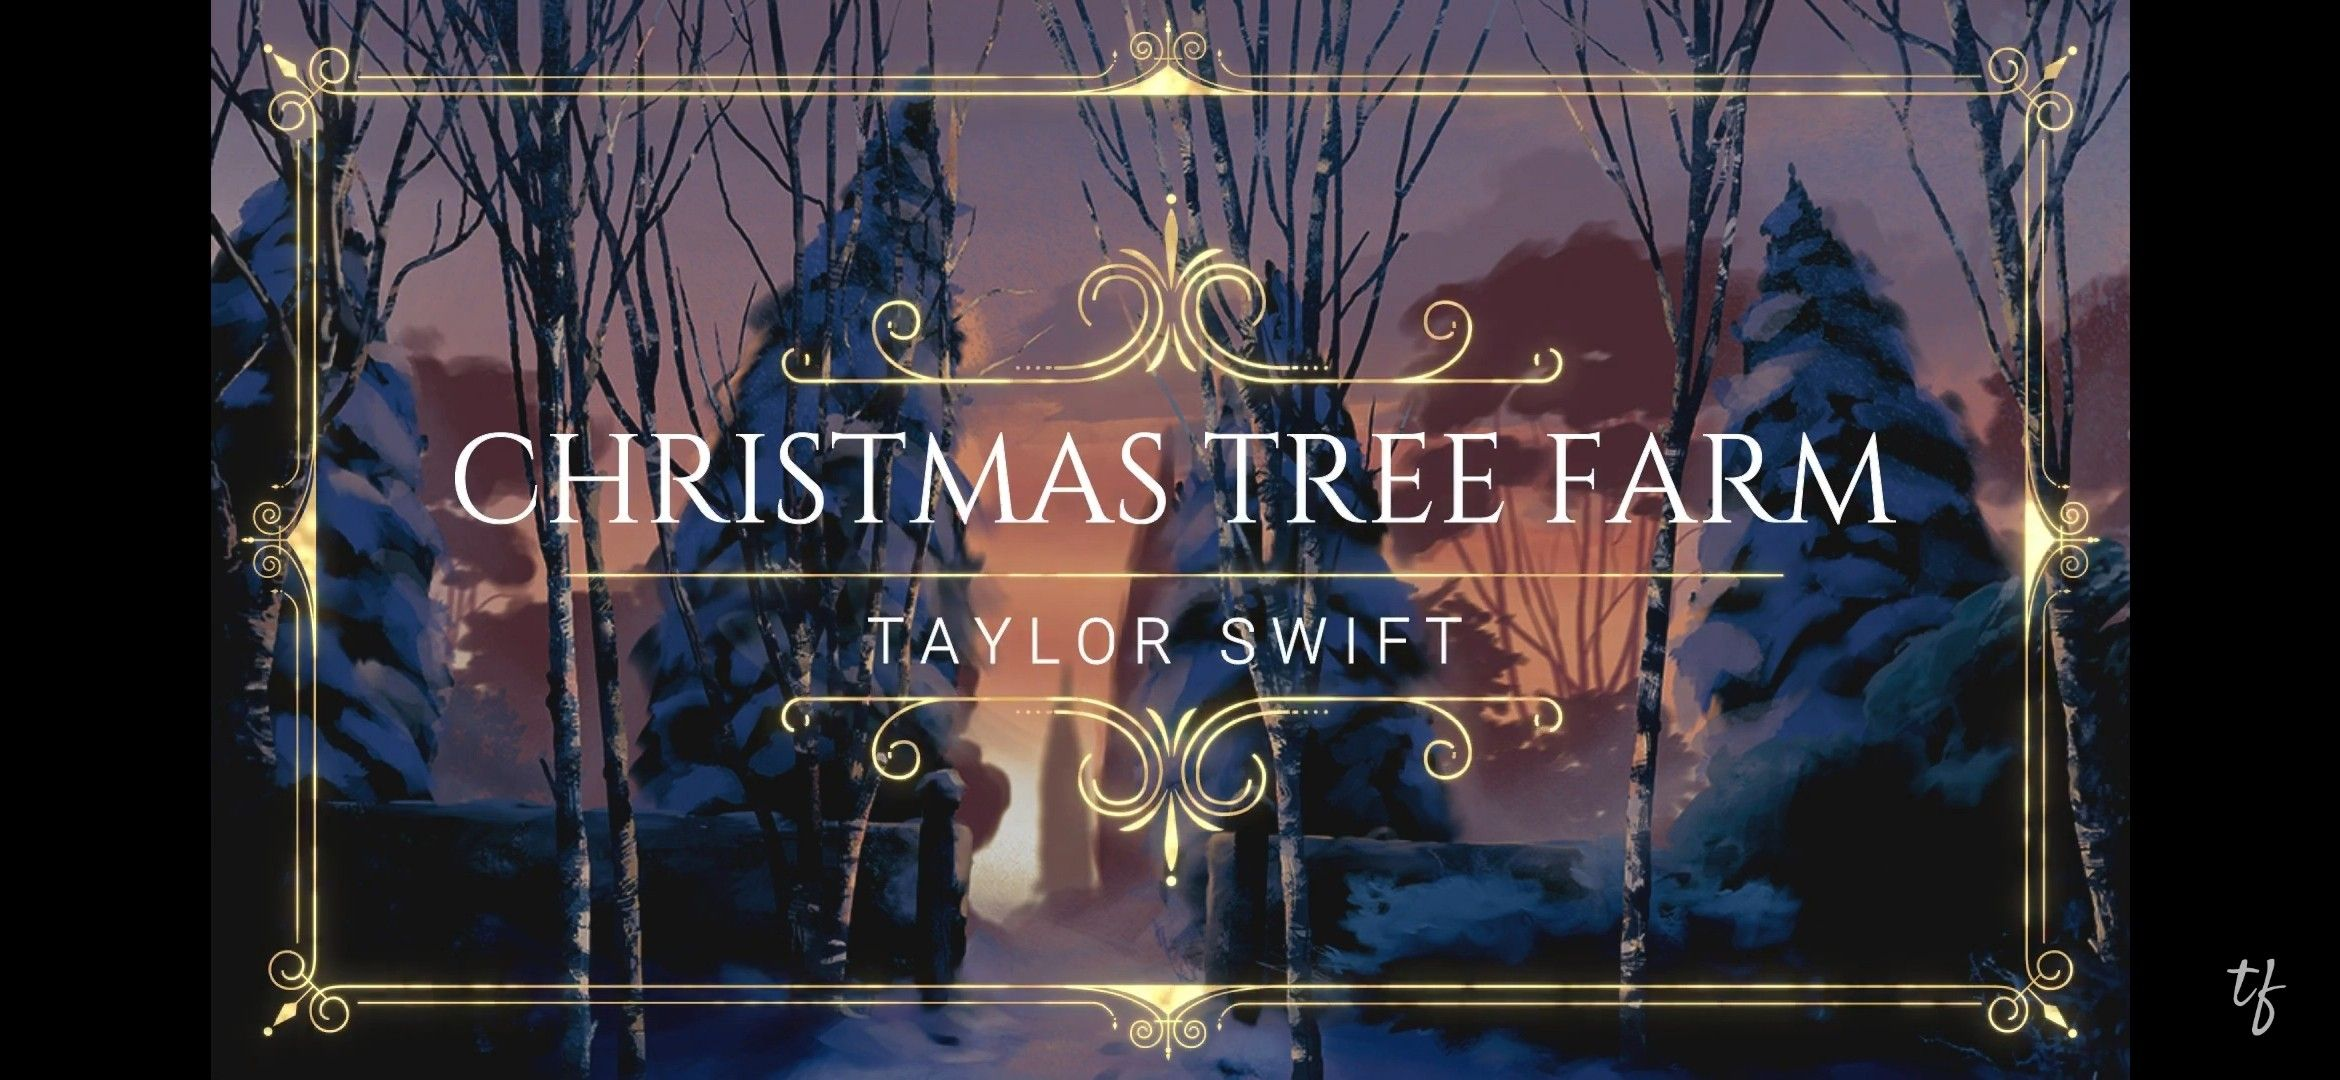 Taylor Swift New Song Lyrics Taylor Swift Christmas Christmas Tree Farm Taylor Swift New Song